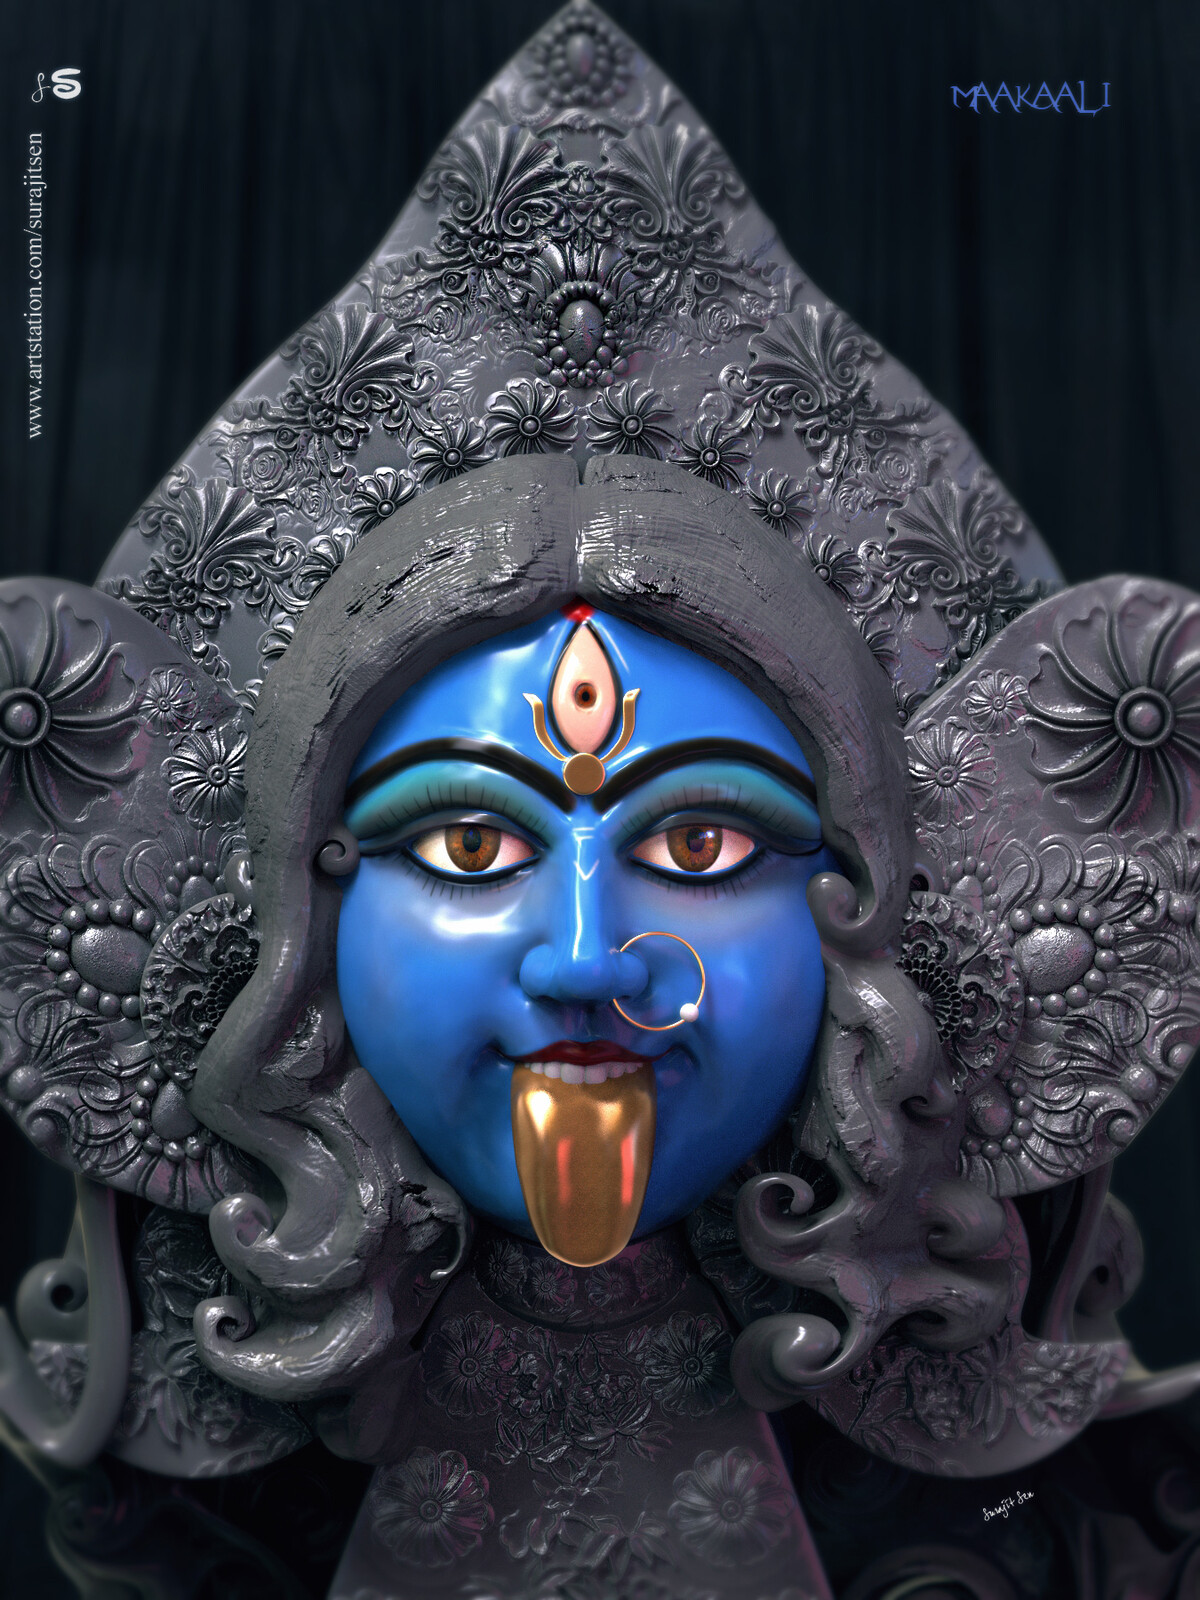 Updated version one of my Digital Sculpture -   Maakaali I tried to create the Goddess Kali.